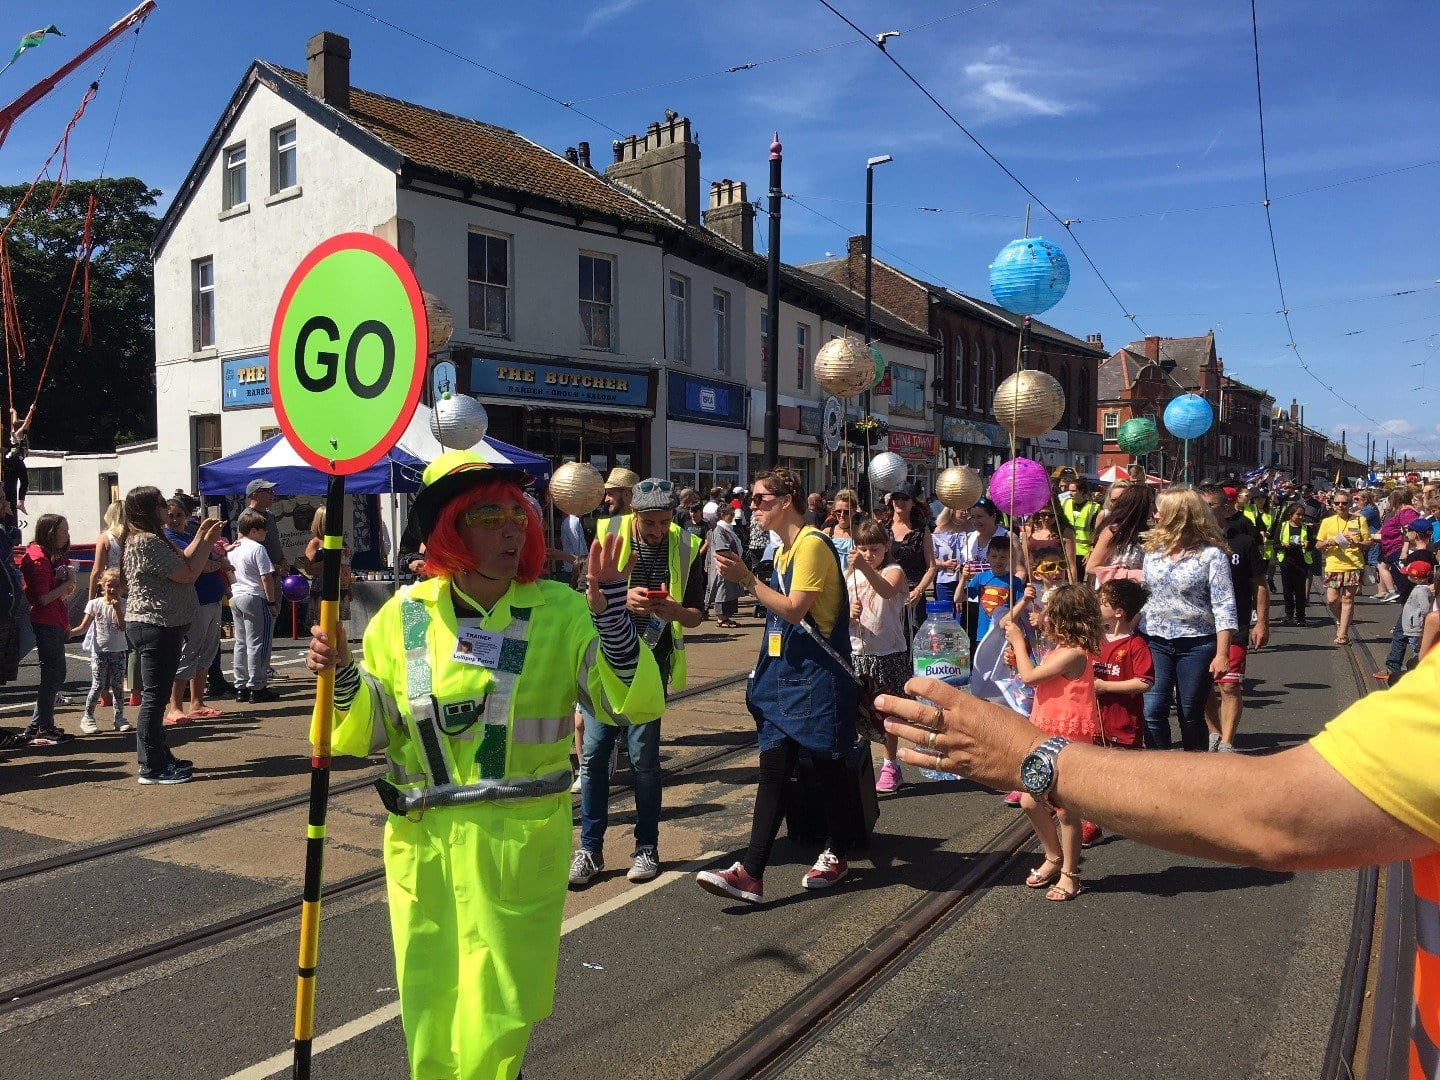 SpareParts Arts Parade, Fleetwood Tram Sunday 2017 Photos